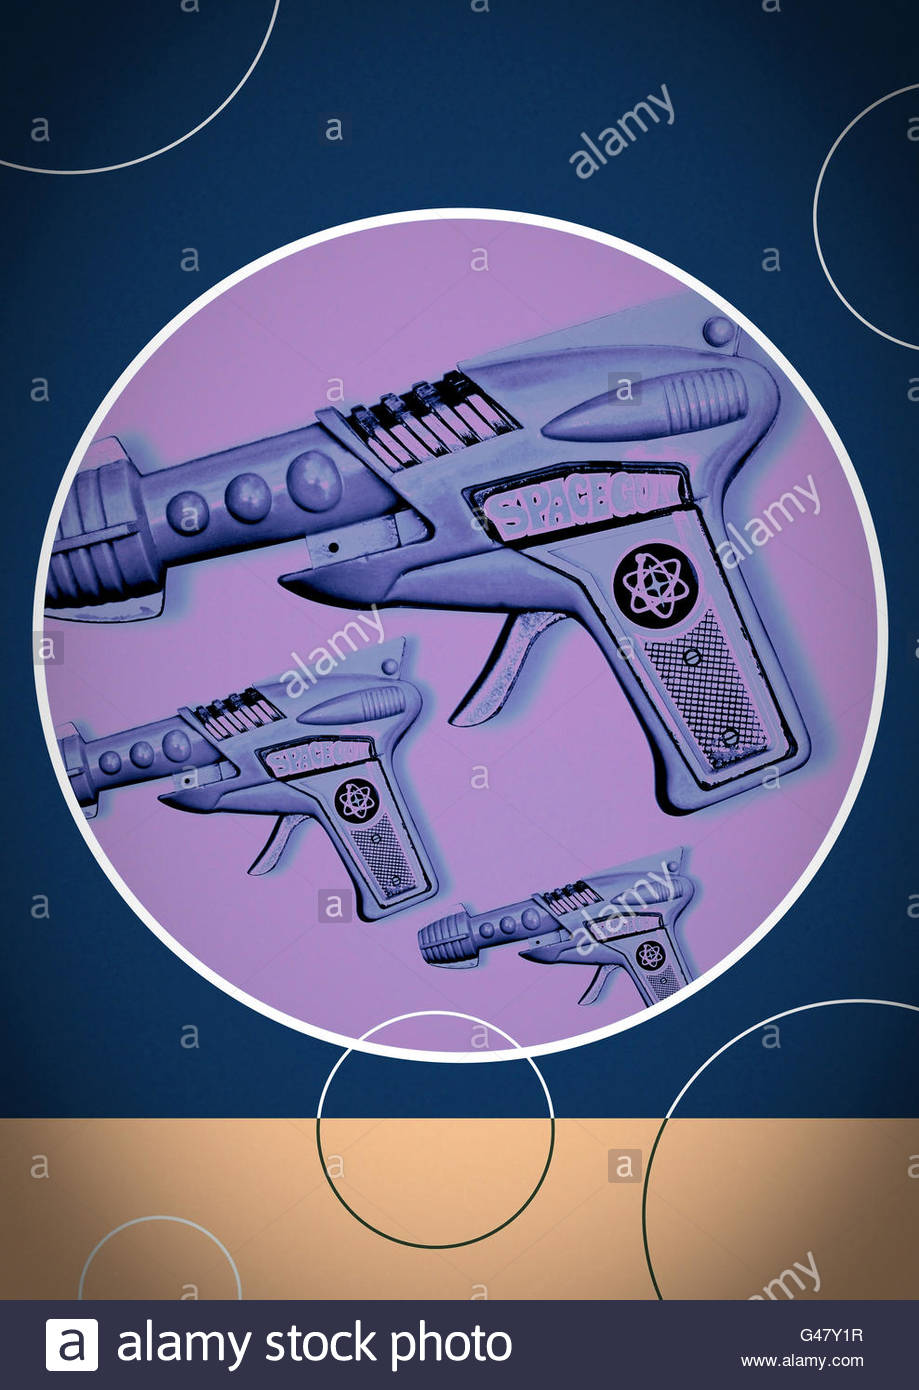 Ray gun repeat space tin toy design atomic blaster illustration - Stock Image